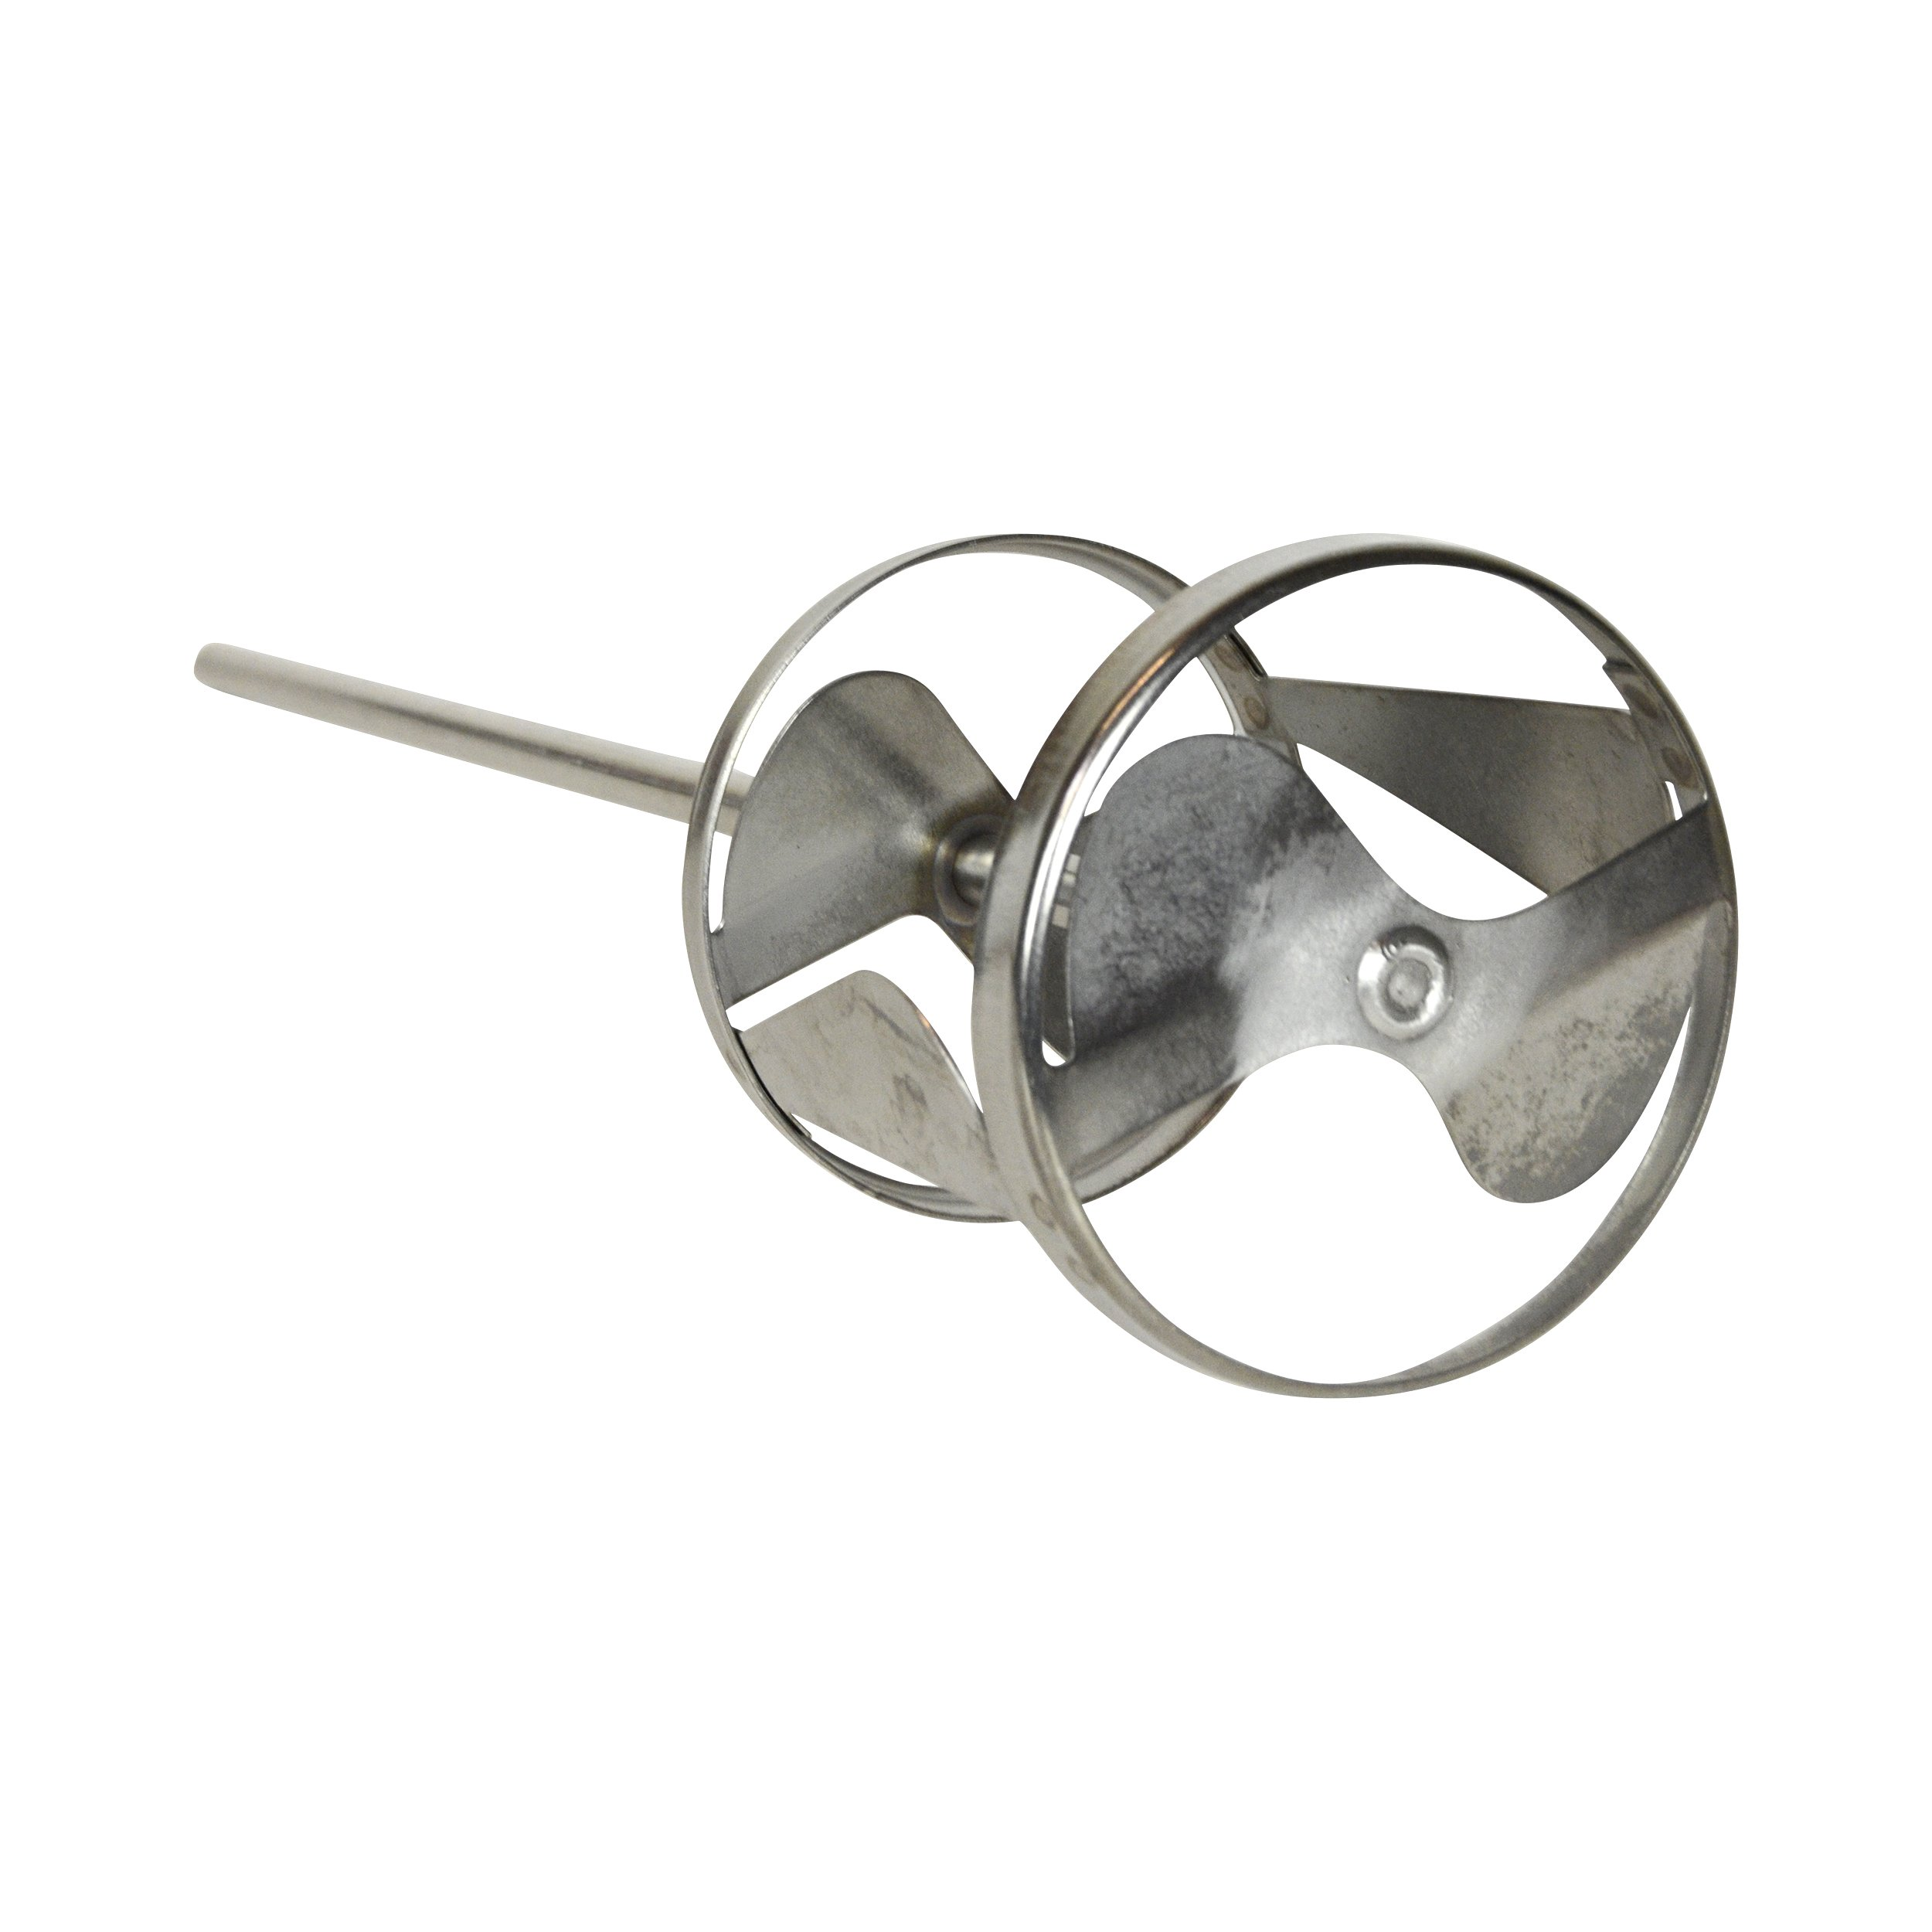 Jiffy Mixer CO. PS-1 1/2'' Shaft 5-10 Gallon Stainless Steel Mixing Blade (4-Pack) by Jiffy Mixer (Image #3)